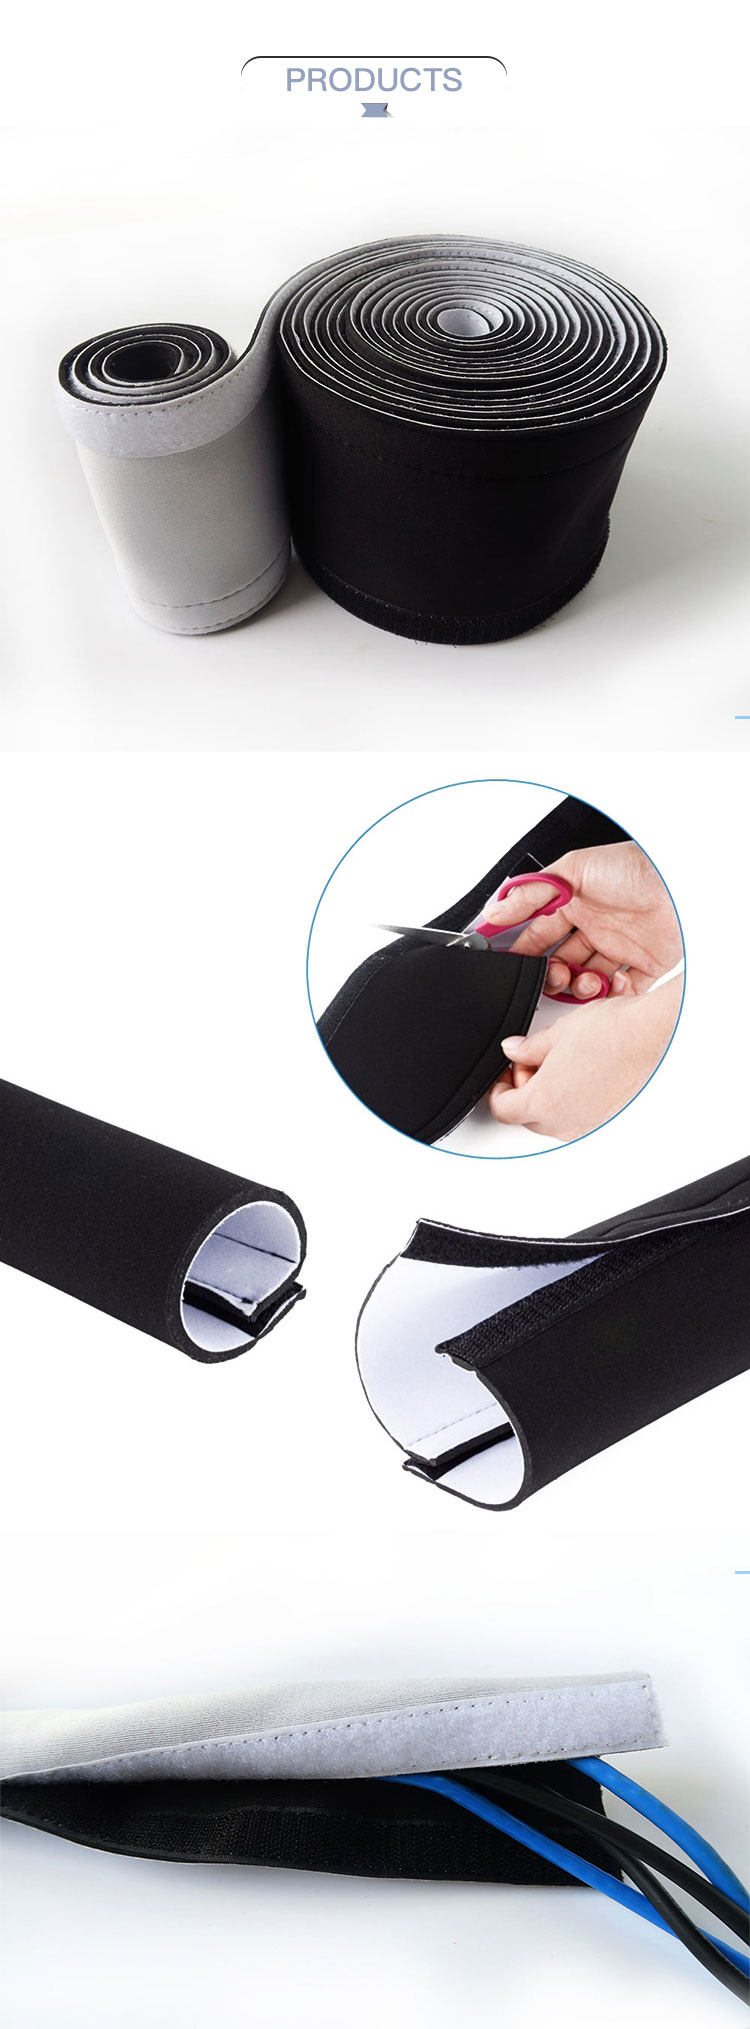 Neoprene Cord Sleeves Wire Cover Concealer Wrap Divign Wire Cable Management Sleeve hide